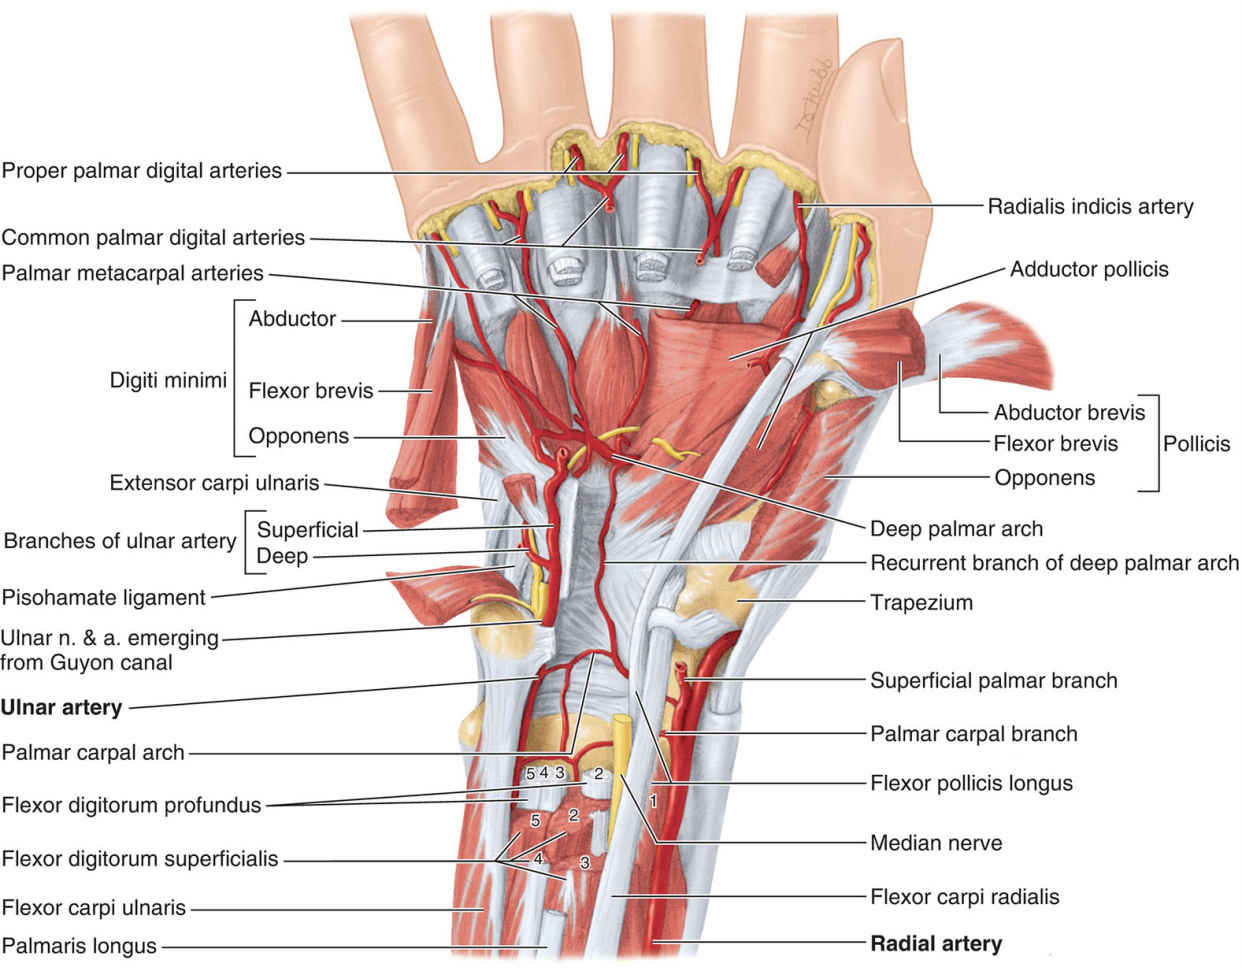 Muscles And Arteries Of Distal Forearm And Deep Palm